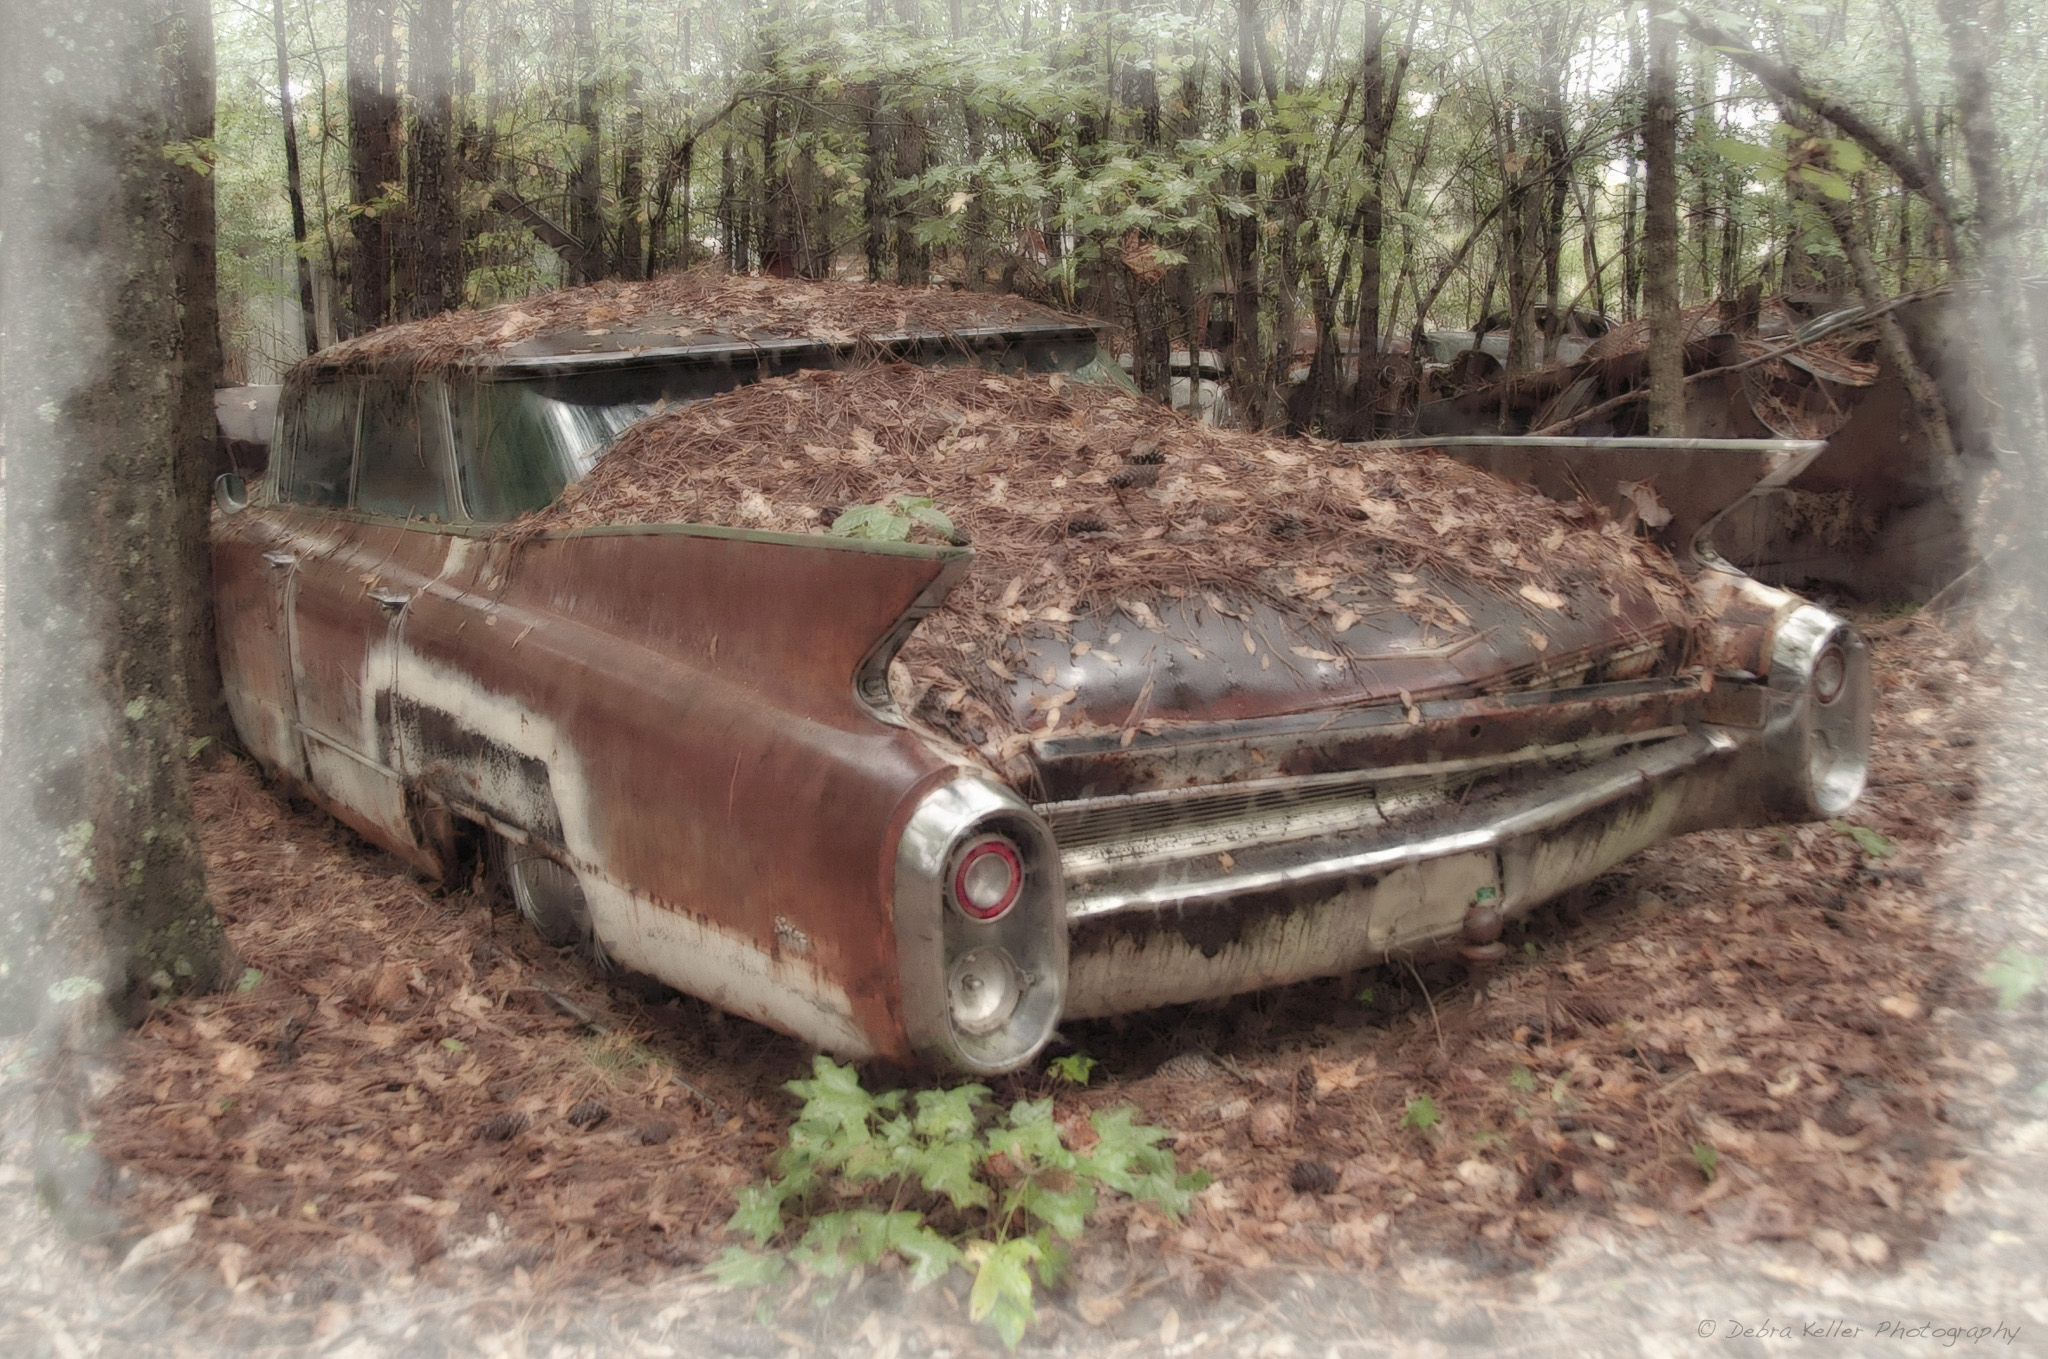 The Cars Lost And Forgotten « Debra Faith Keller